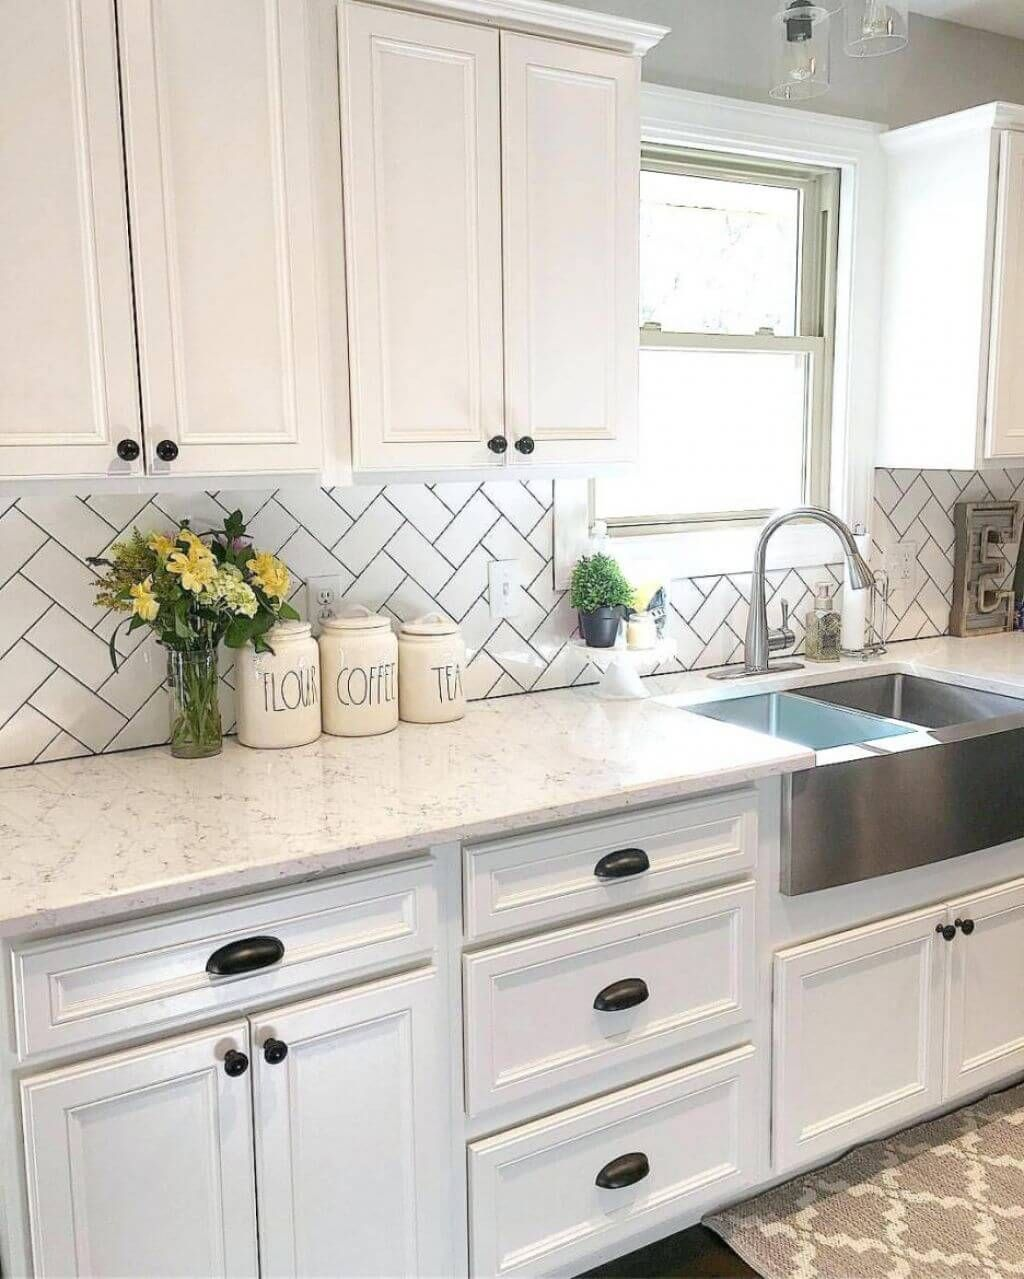 10 Black And White Kitchen Backsplash Ideas 2020 The Tips